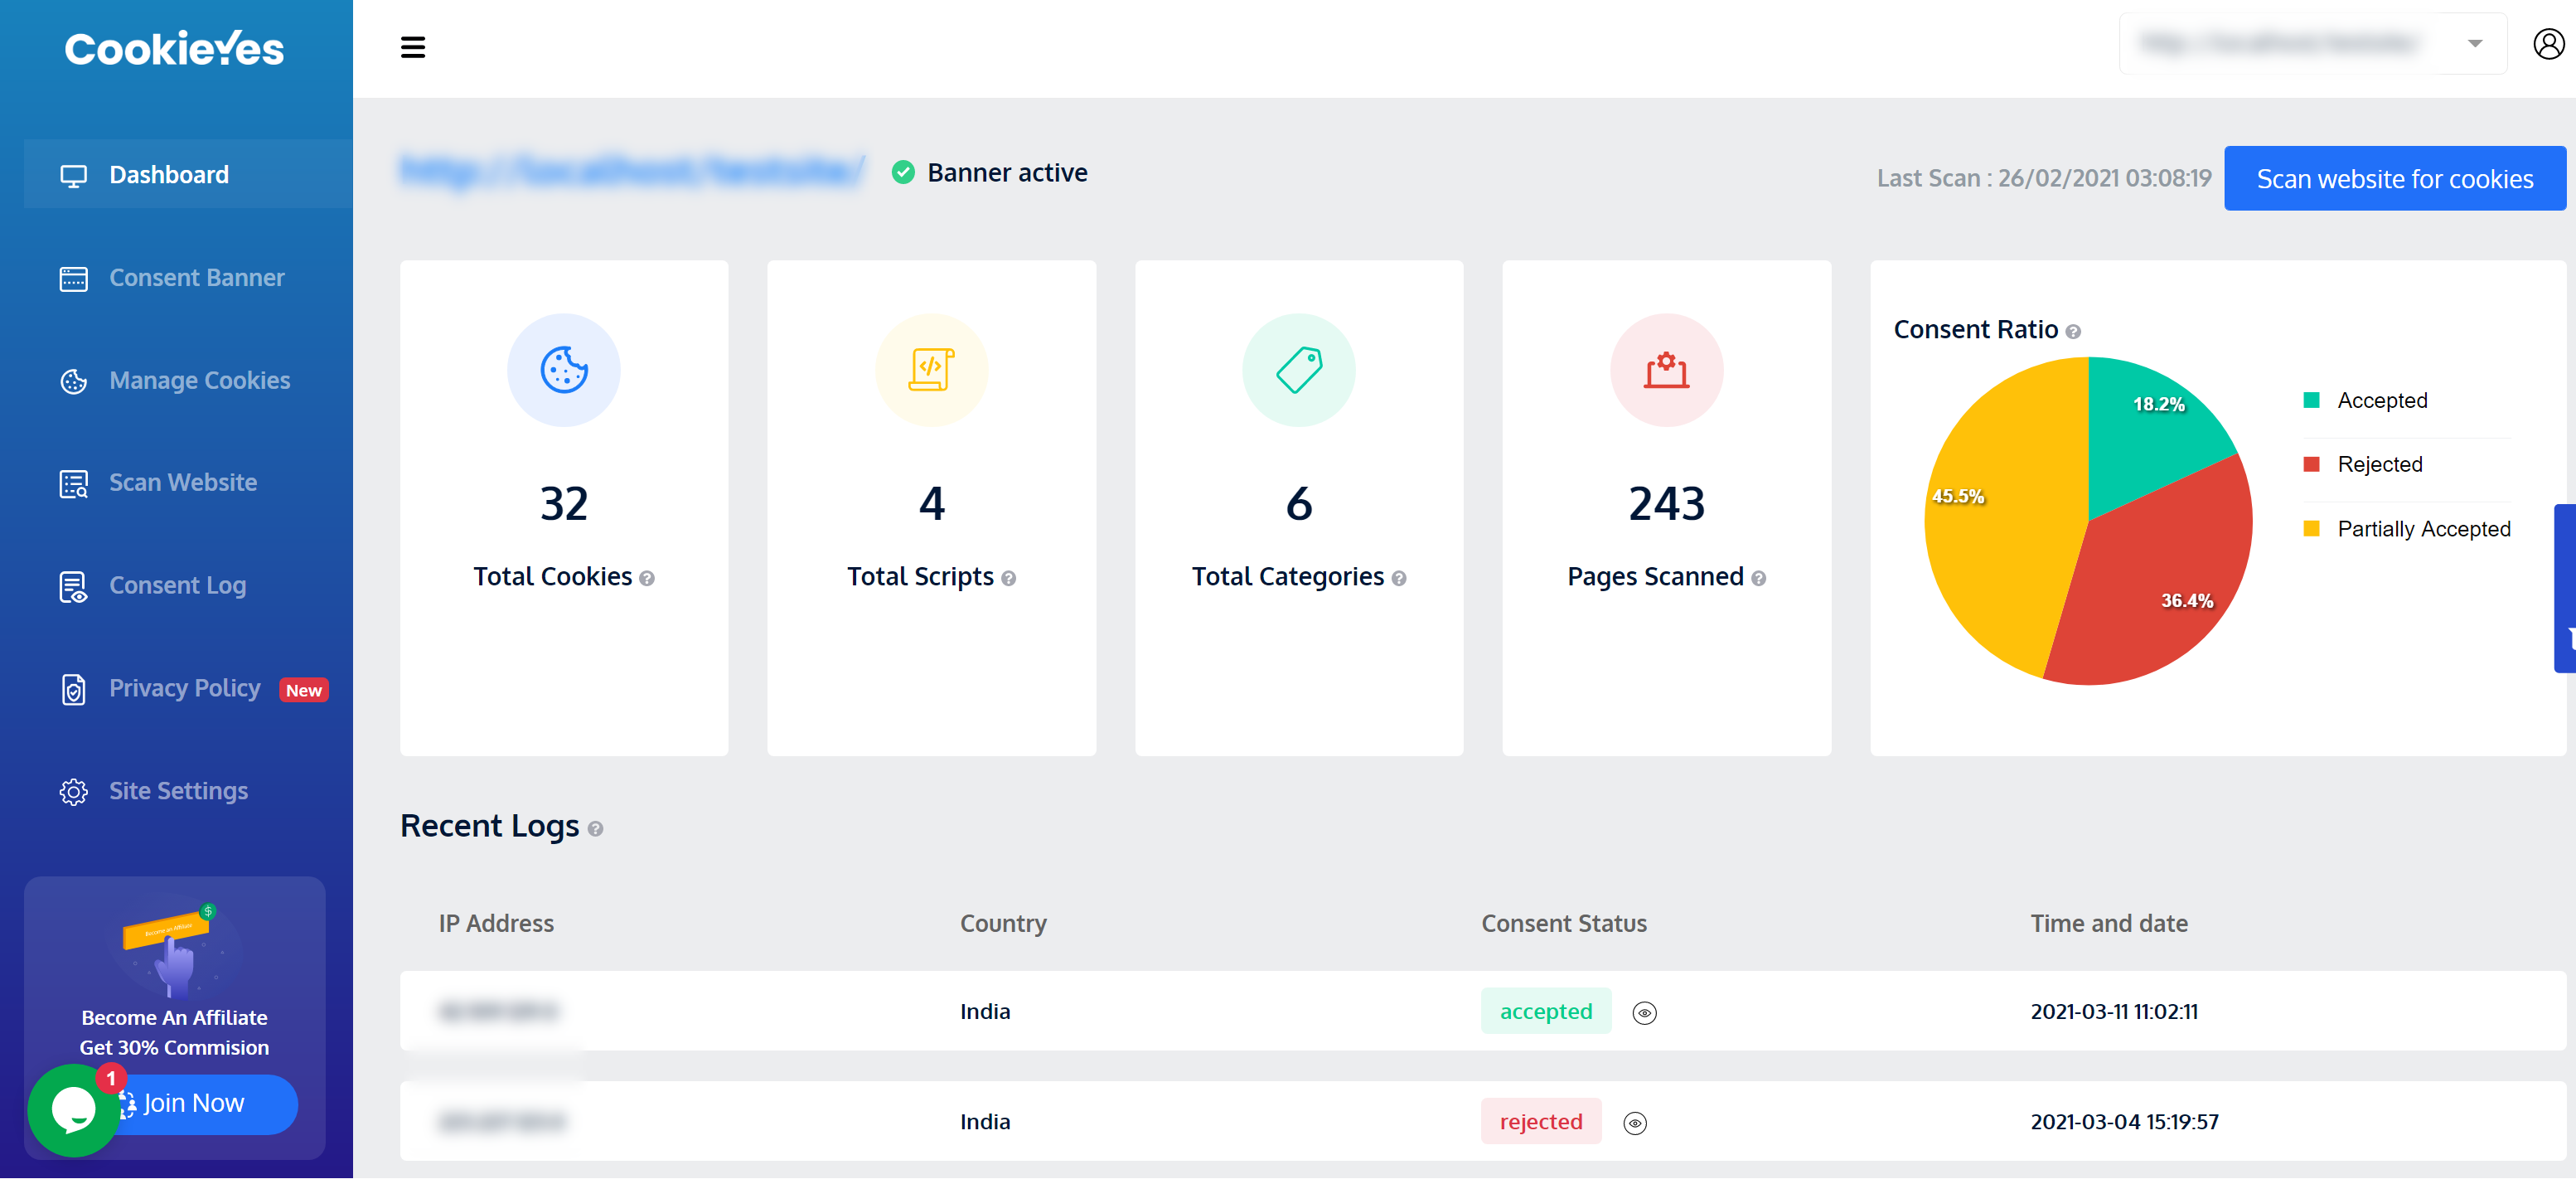 Dashboard of CookieYes cookie consent solution